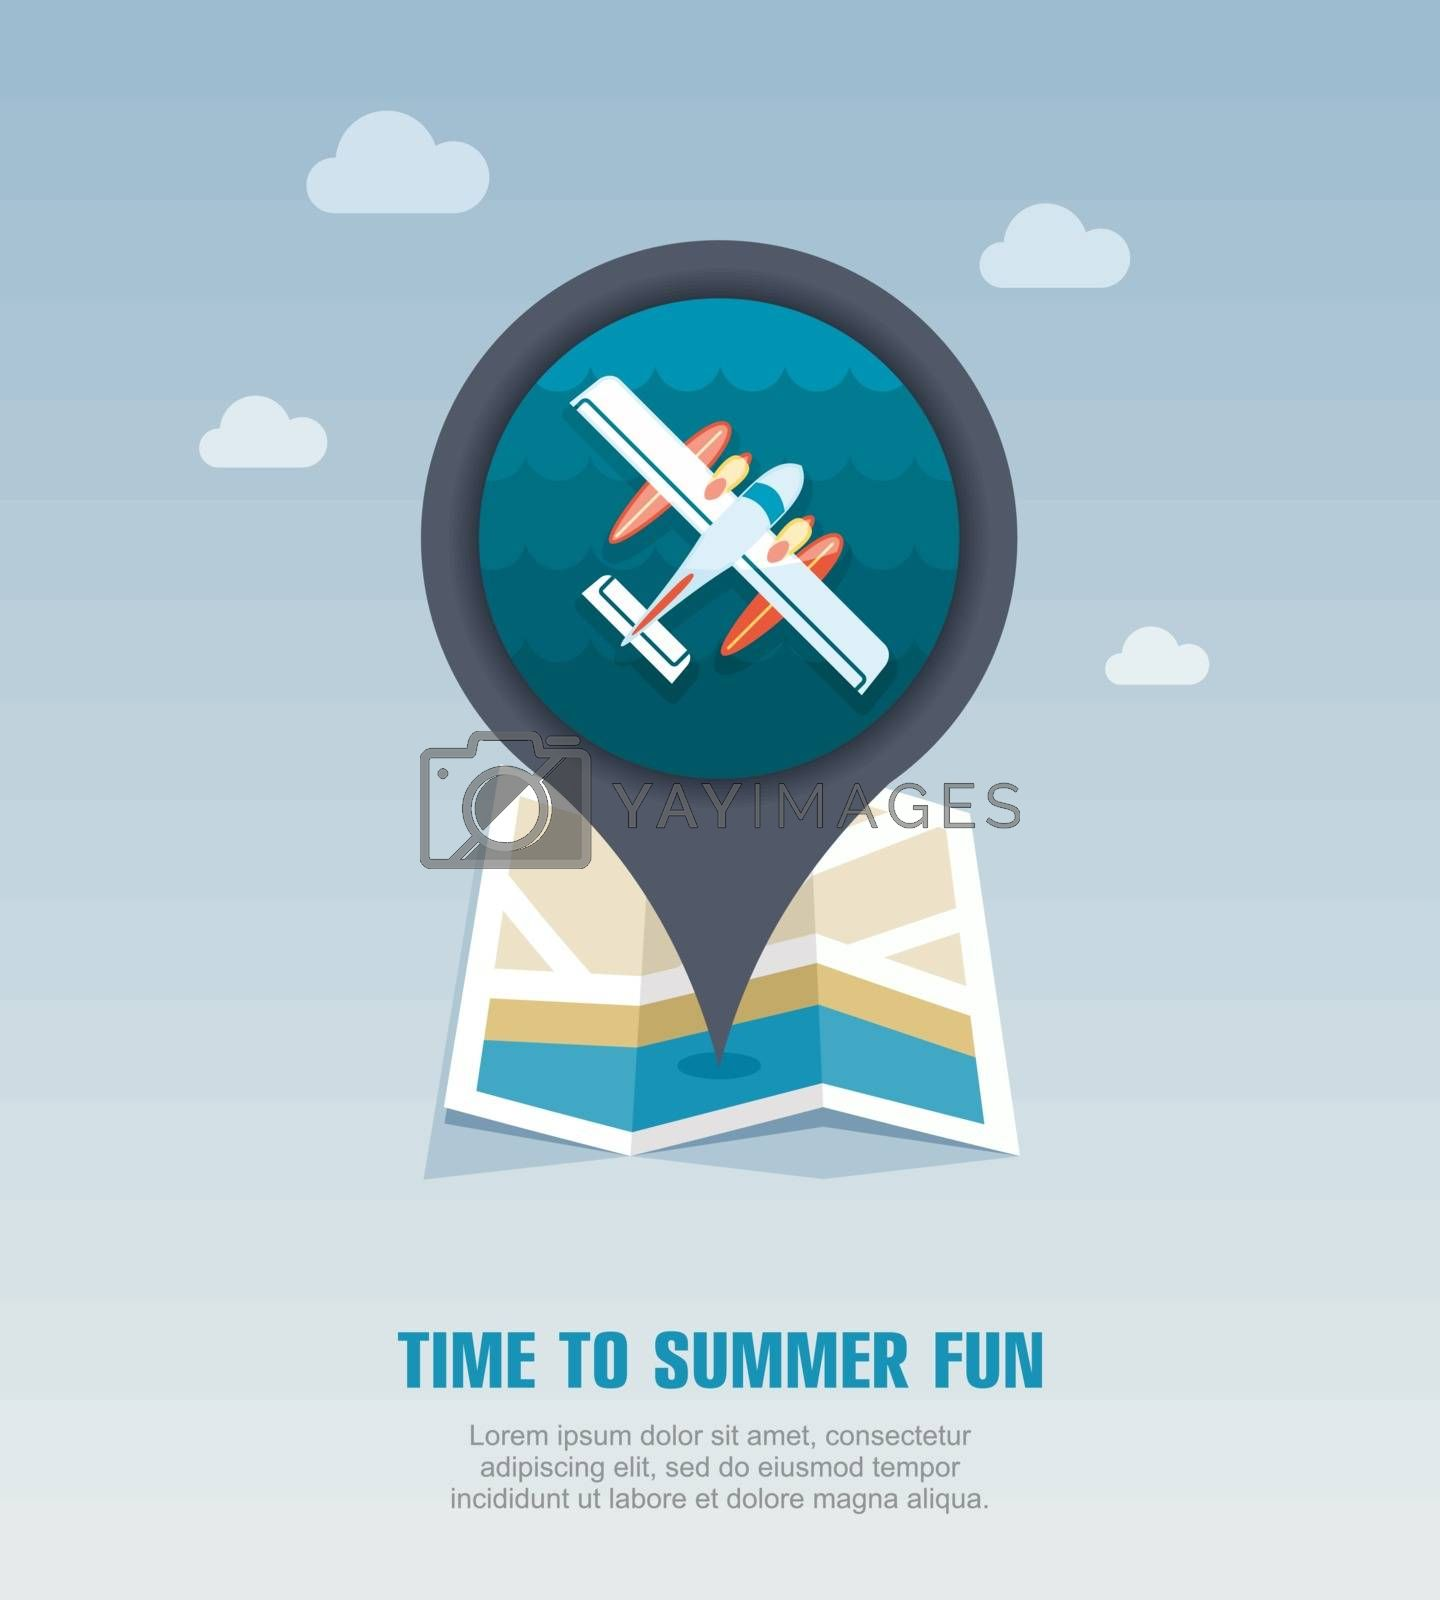 Hydroplane pin map icon. Summer. Vacation by nosik